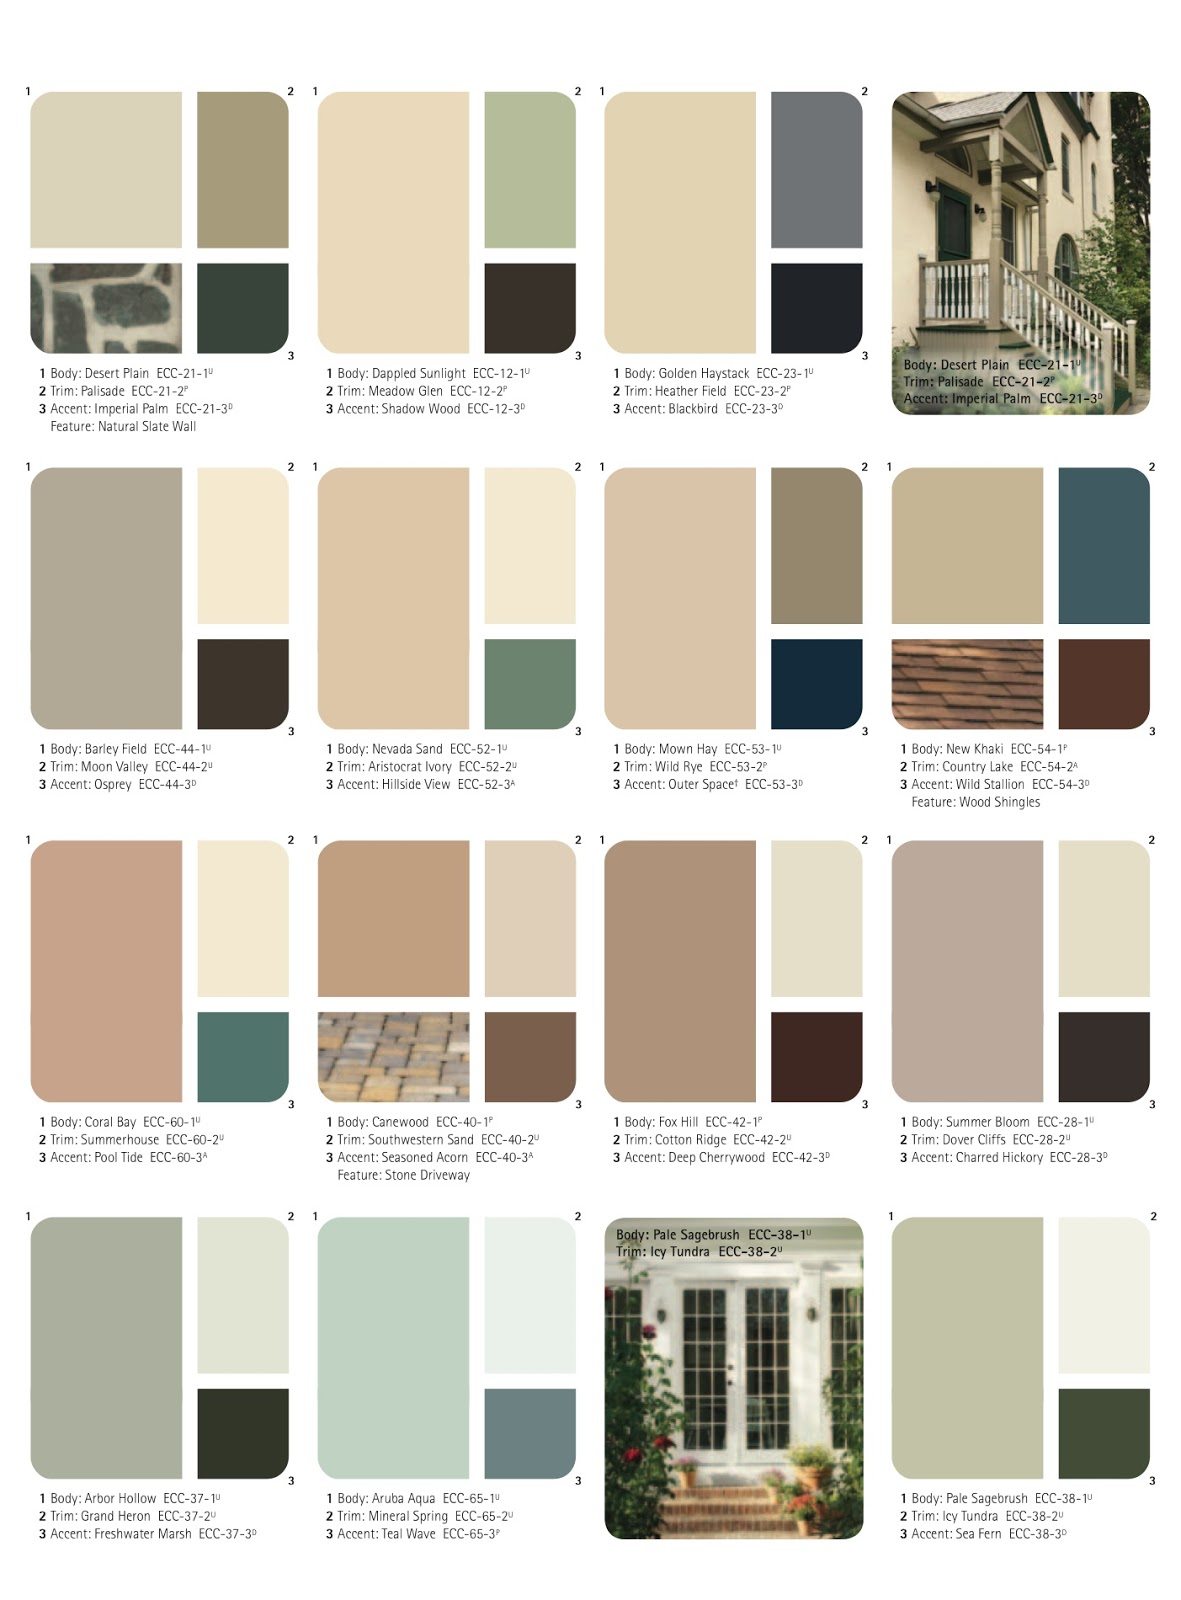 Exterior paint color schemes for brick homes home painting ideas - Exterior paint color combinations for homes ...